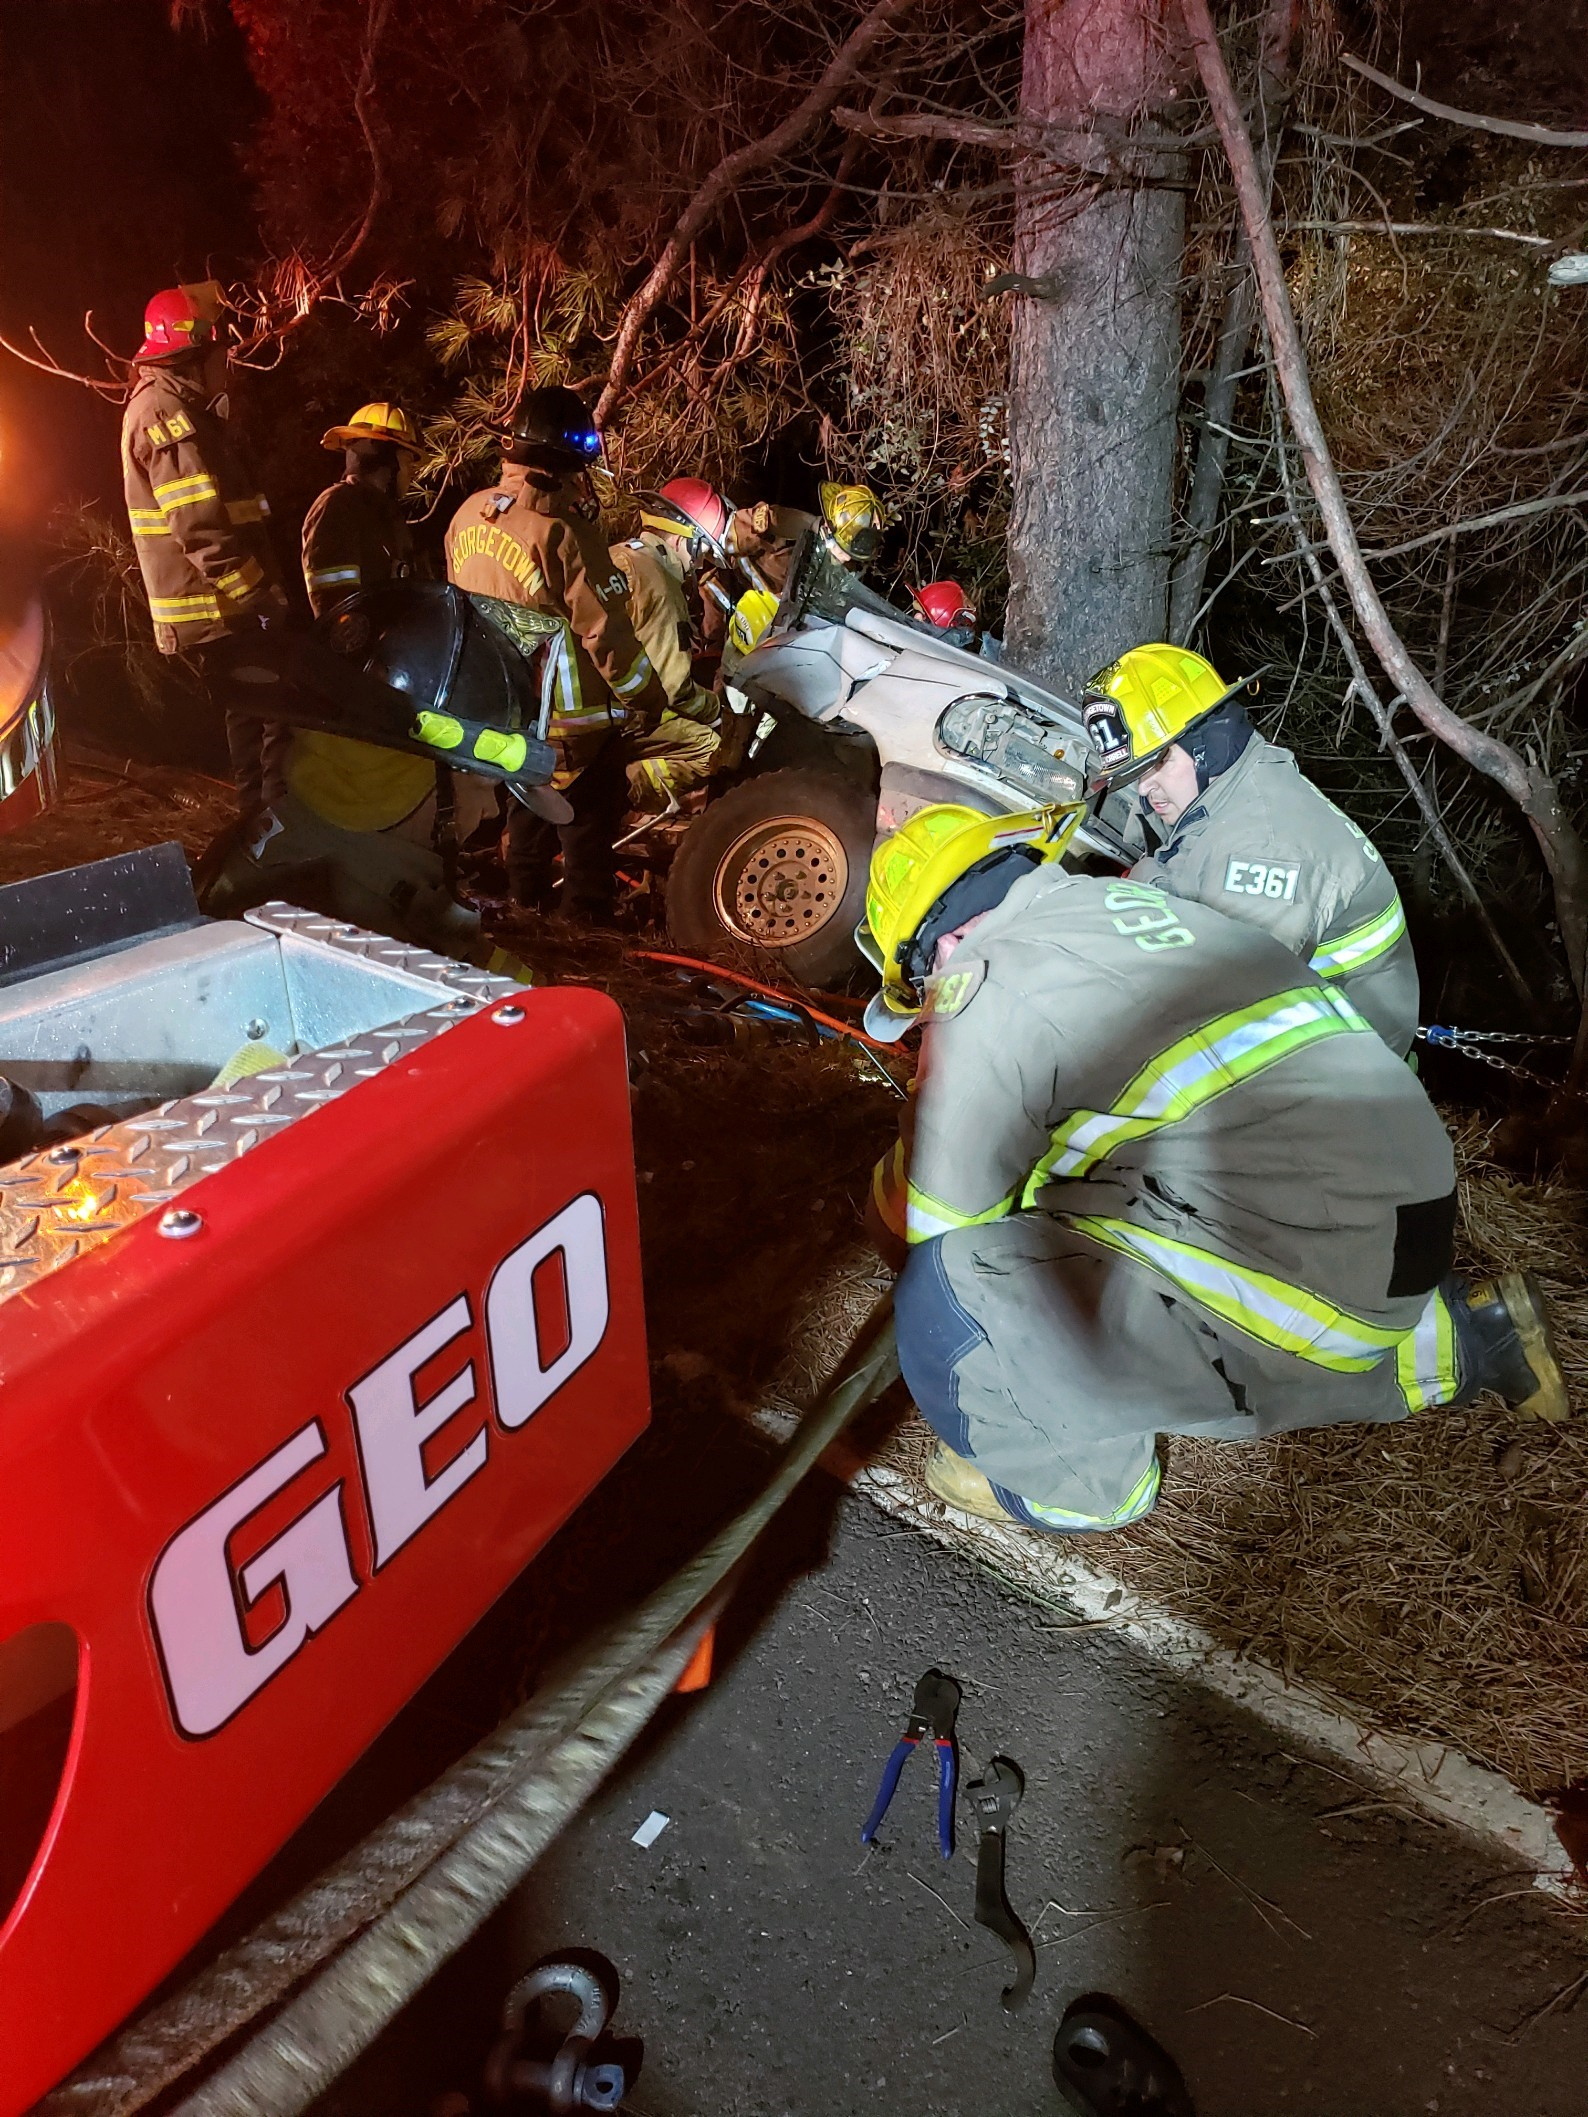 Georgetown Fire Department responded to a Traffic Collision on 12-28-19